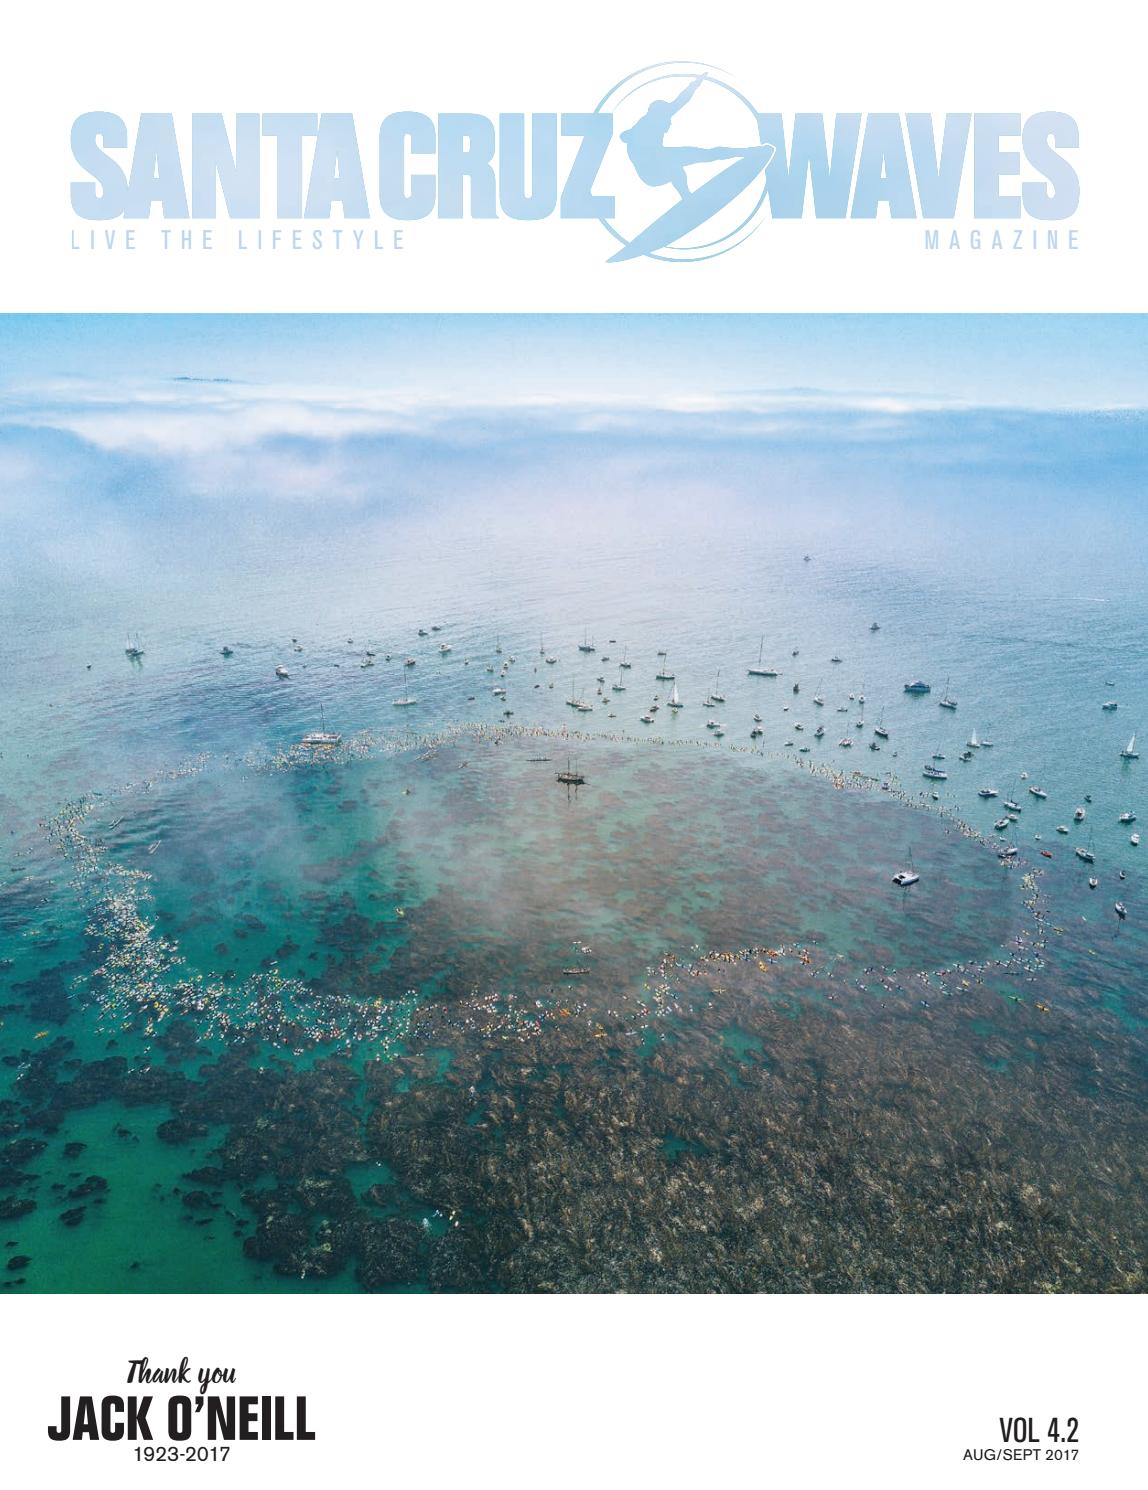 Santa Cruz Waves June/July 2016 Issue 3.1 by Santa Cruz Waves - issuu